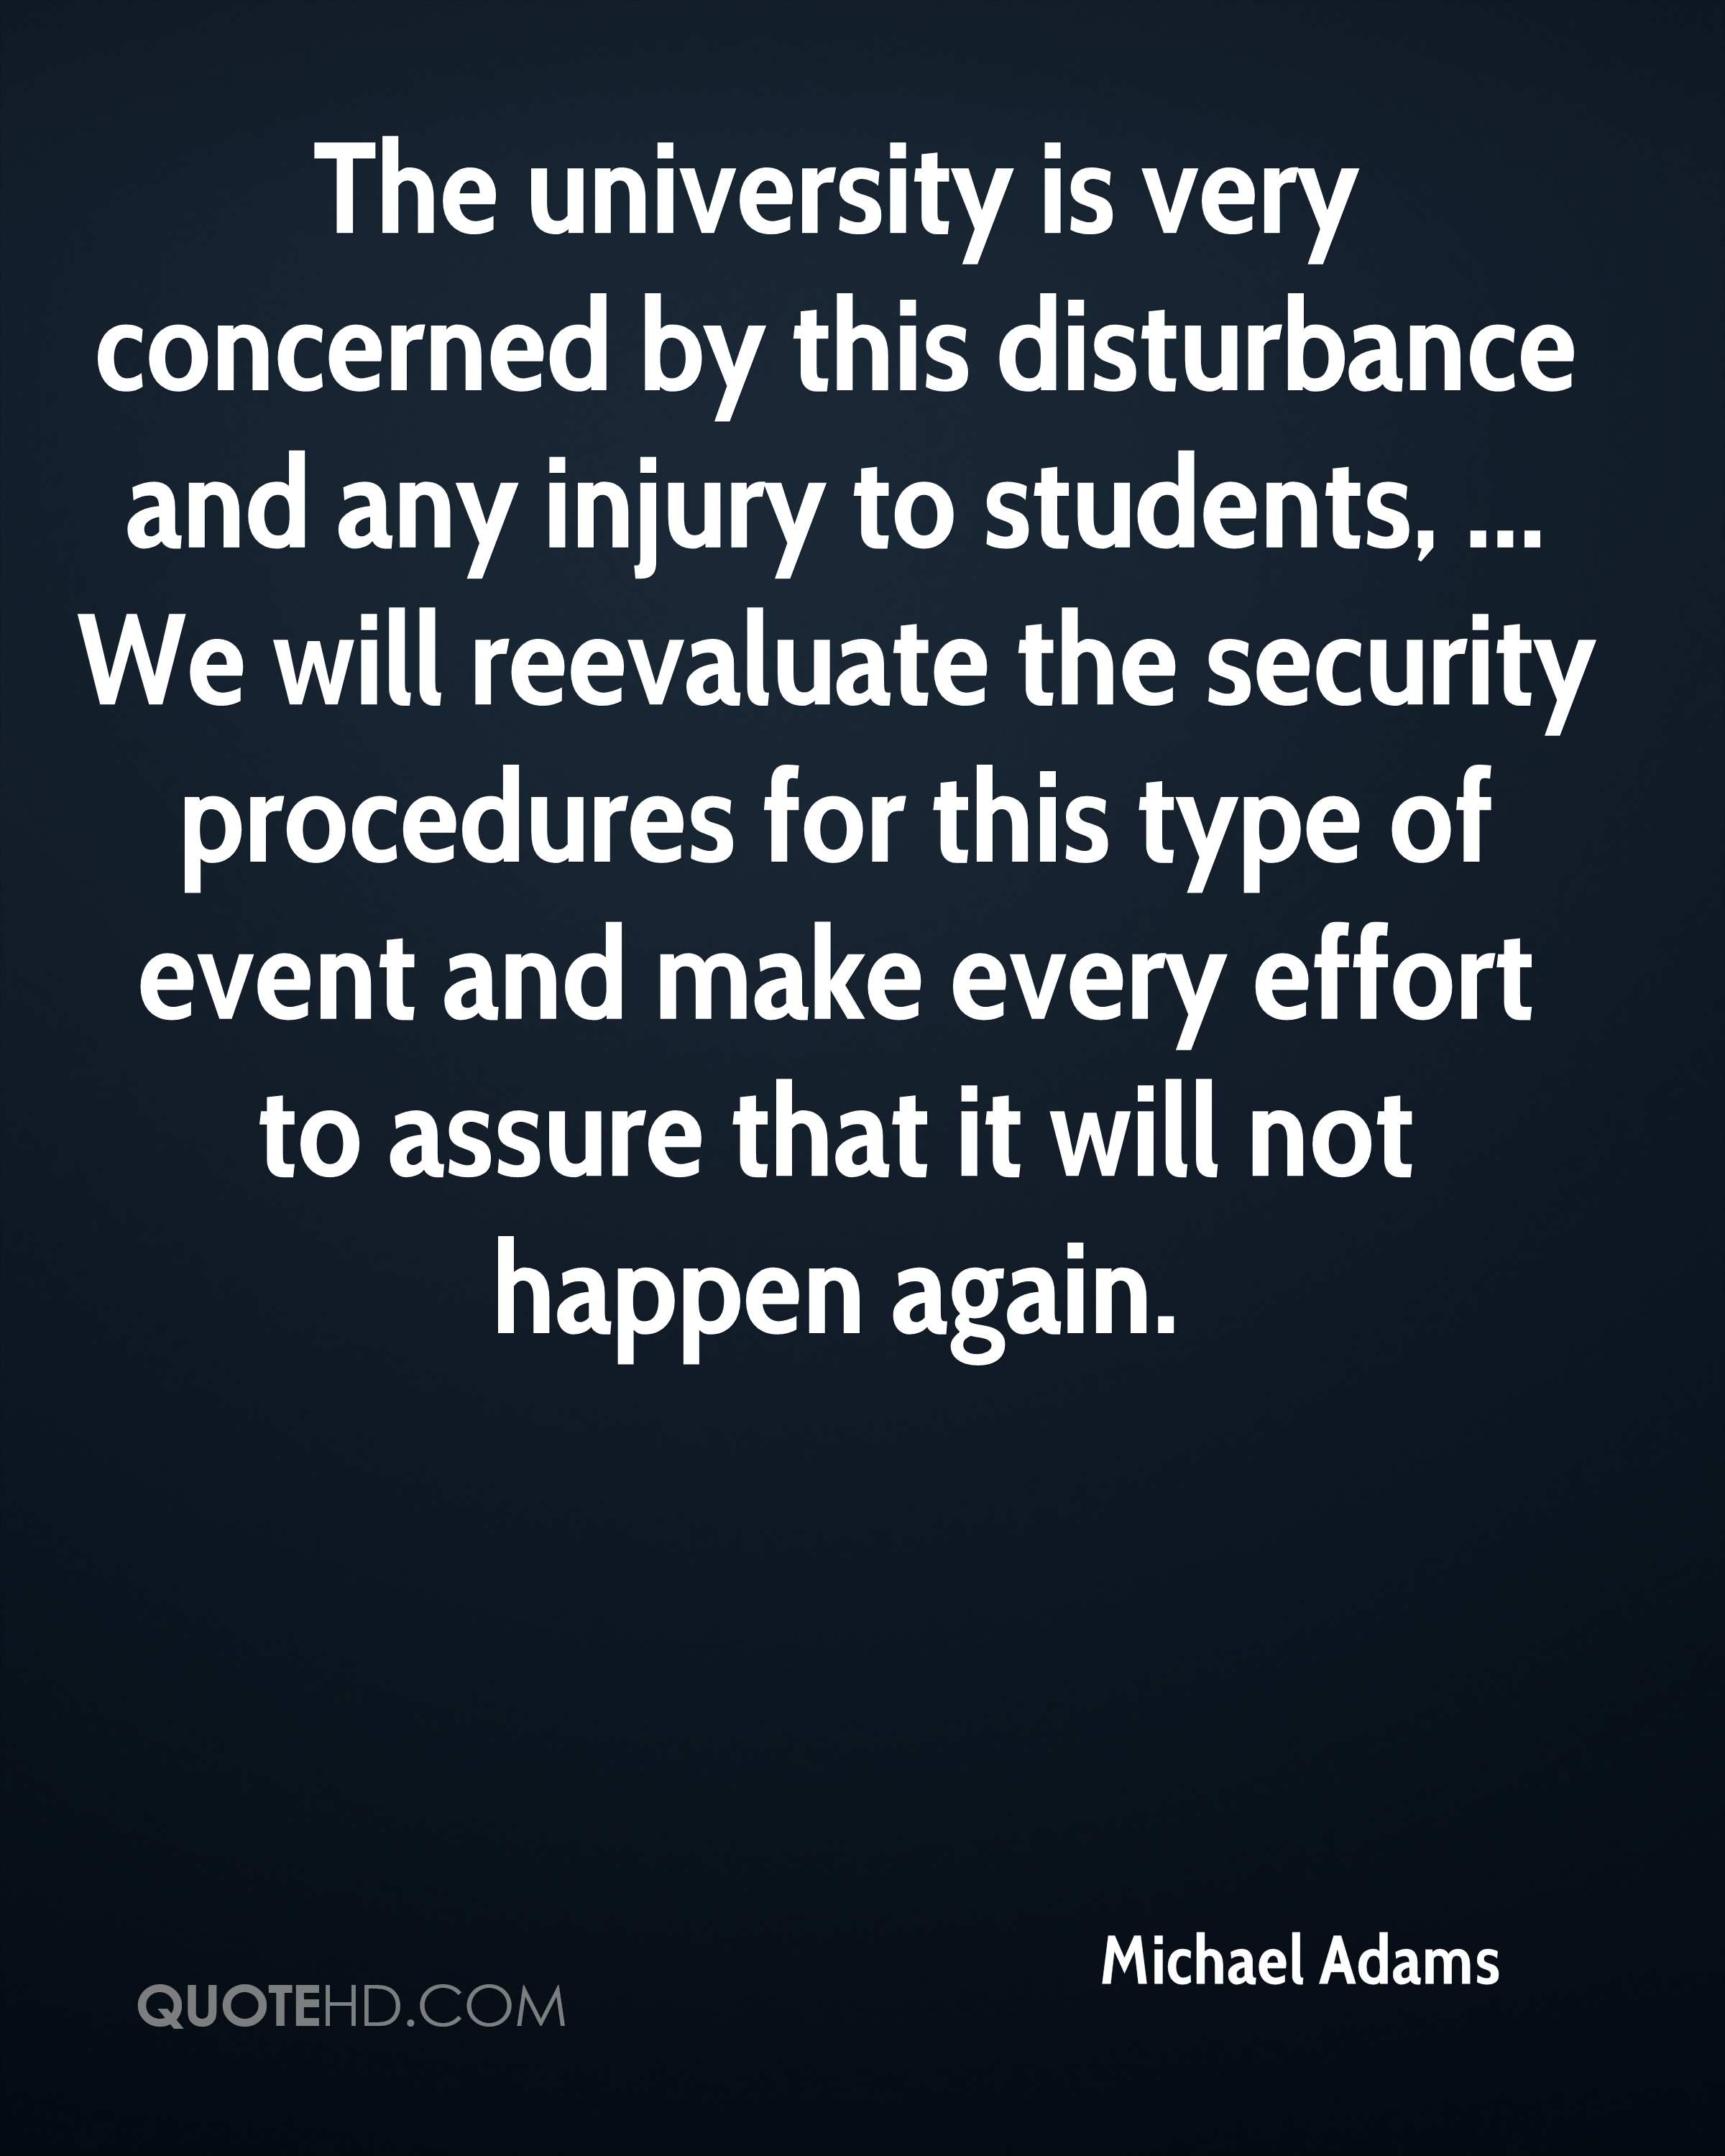 The university is very concerned by this disturbance and any injury to students, ... We will reevaluate the security procedures for this type of event and make every effort to assure that it will not happen again.